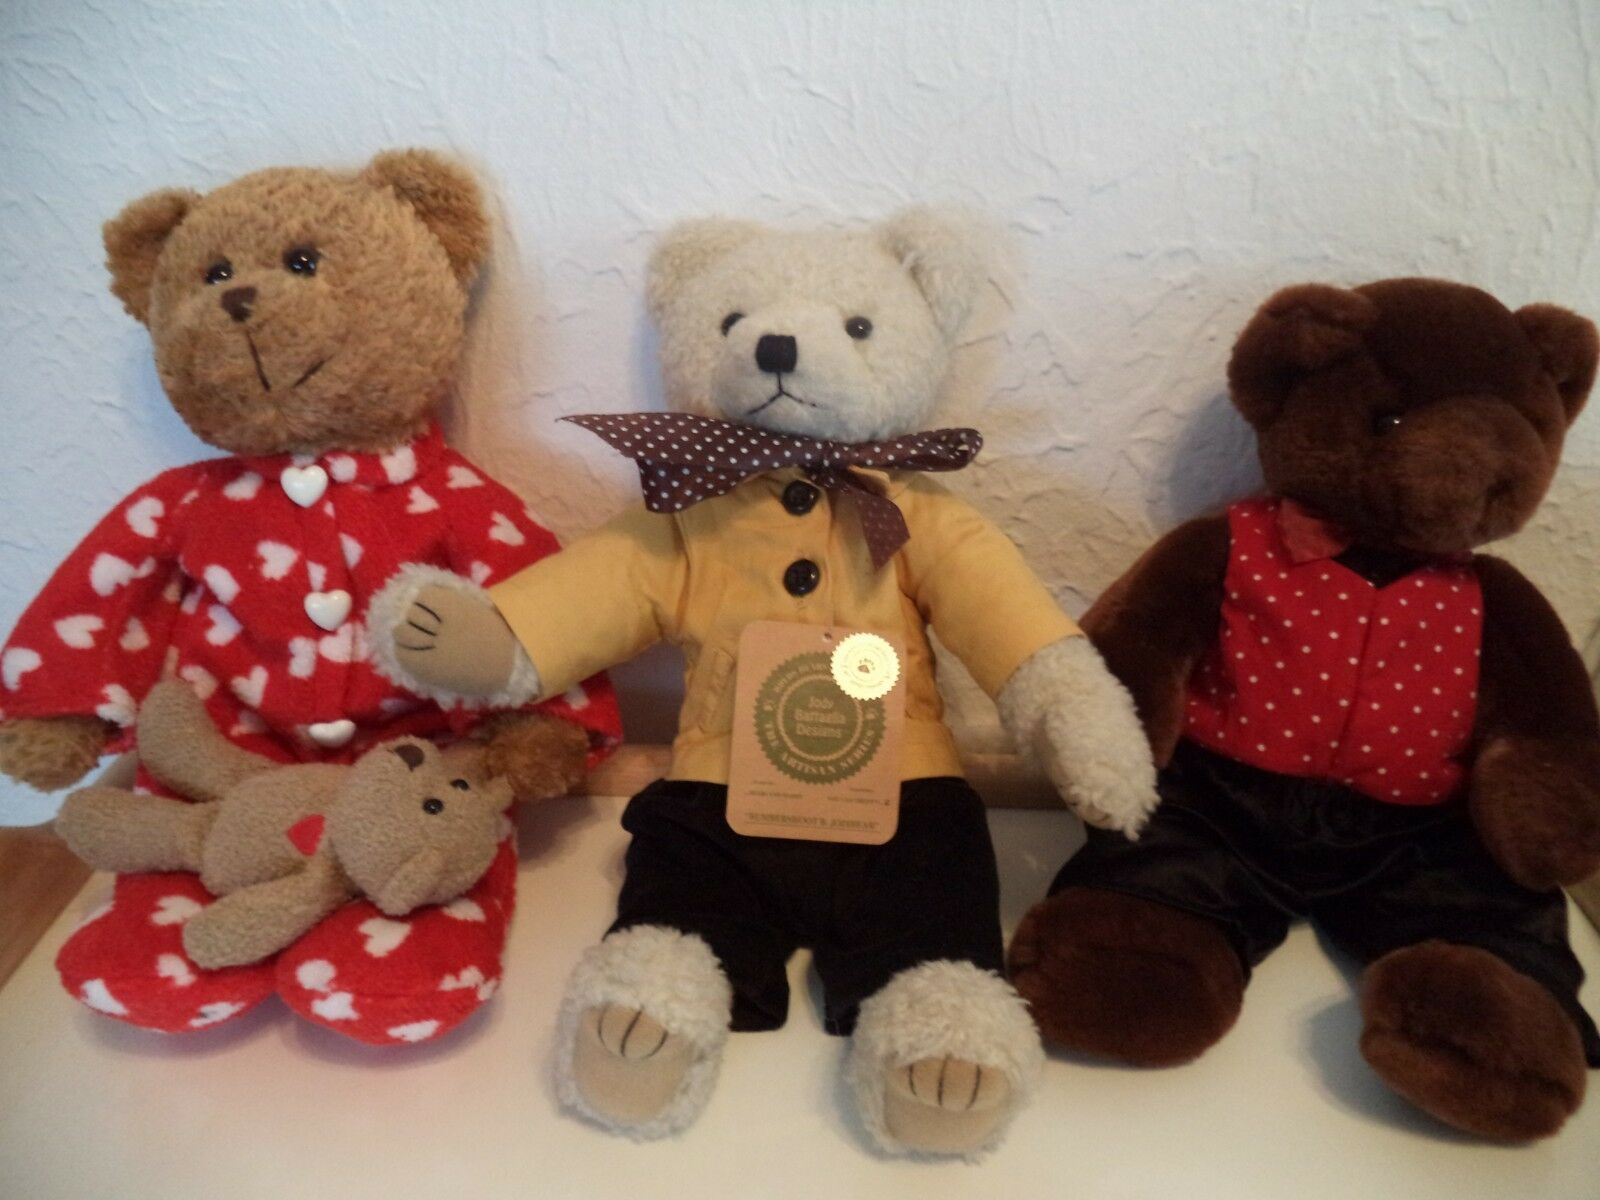 Three Old Teddy Bear made by Wang's International, Galleria & Commonwealth